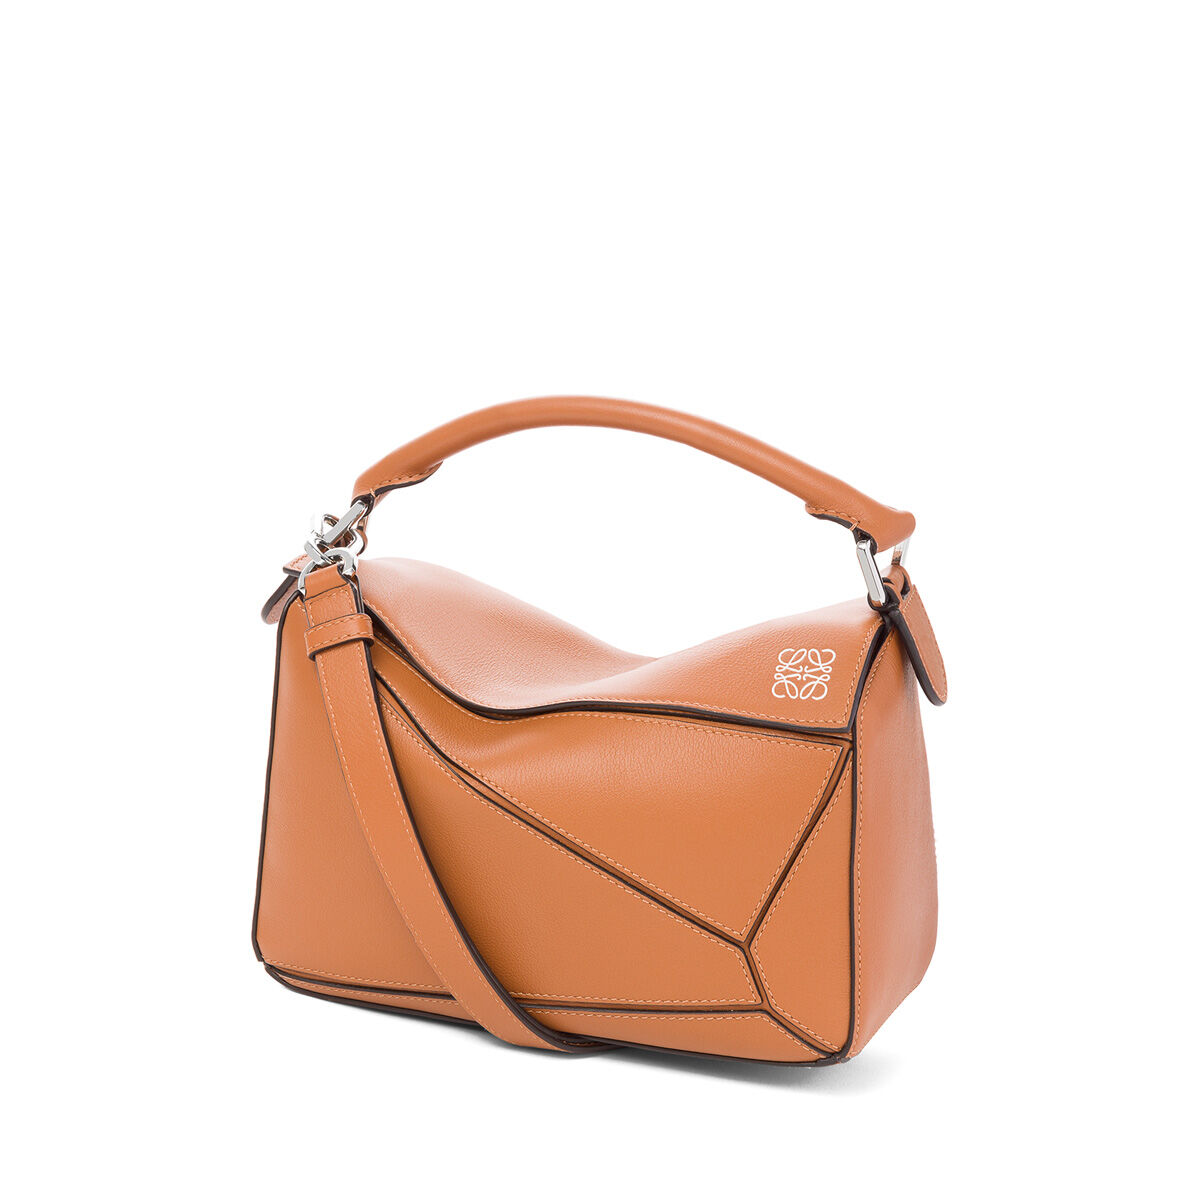 LOEWE Puzzle Small Bag 棕色 all